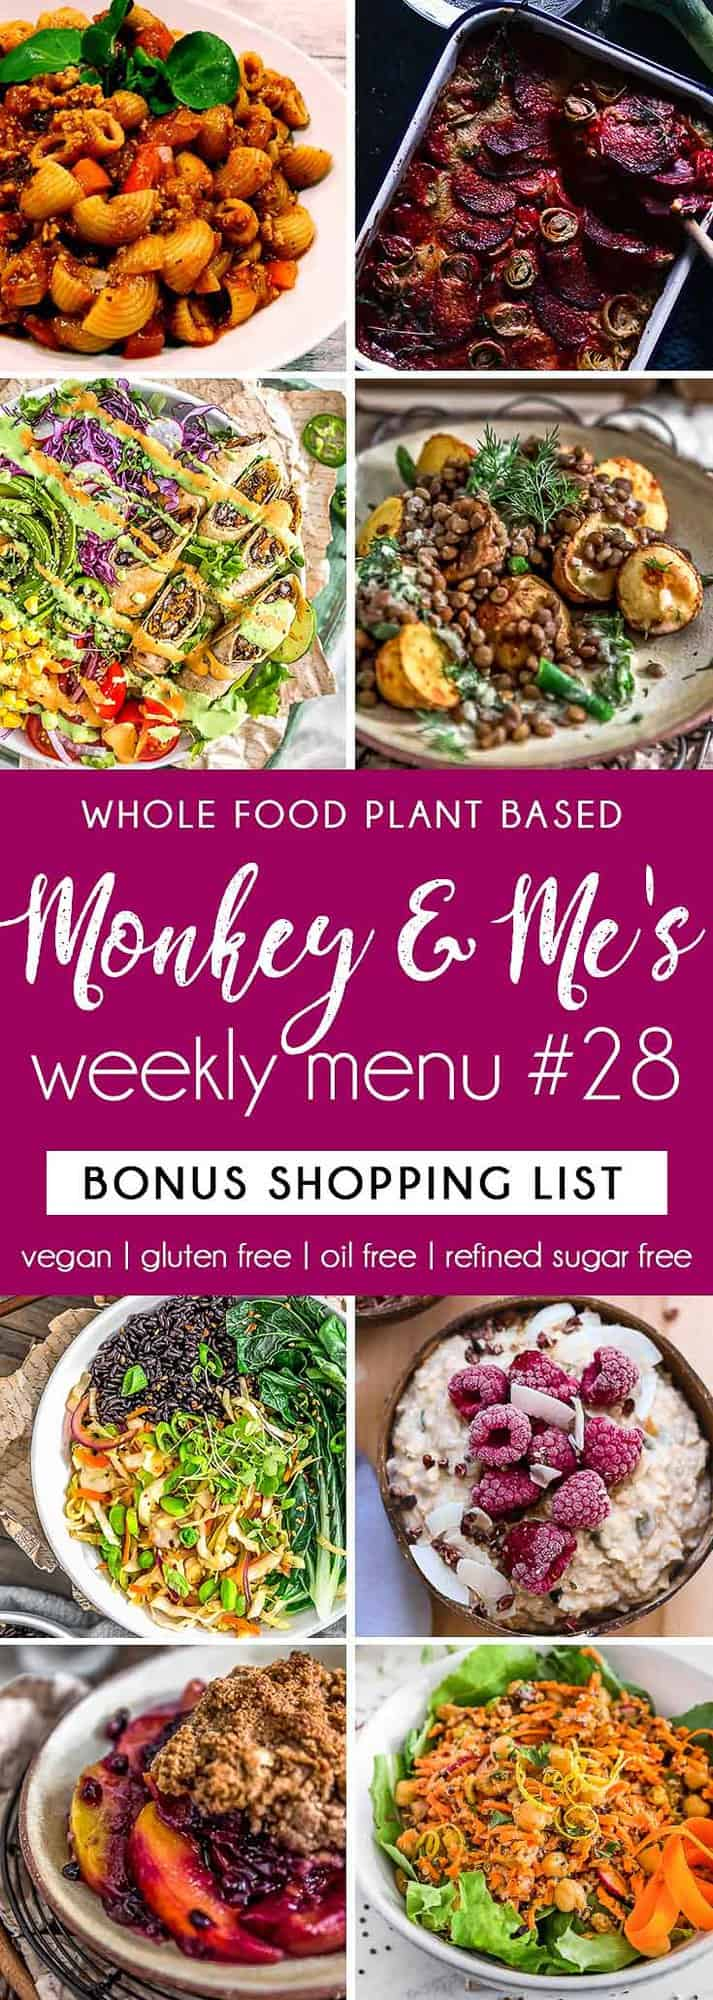 Monkey and Me's Menu 28 featuring 8 recipes